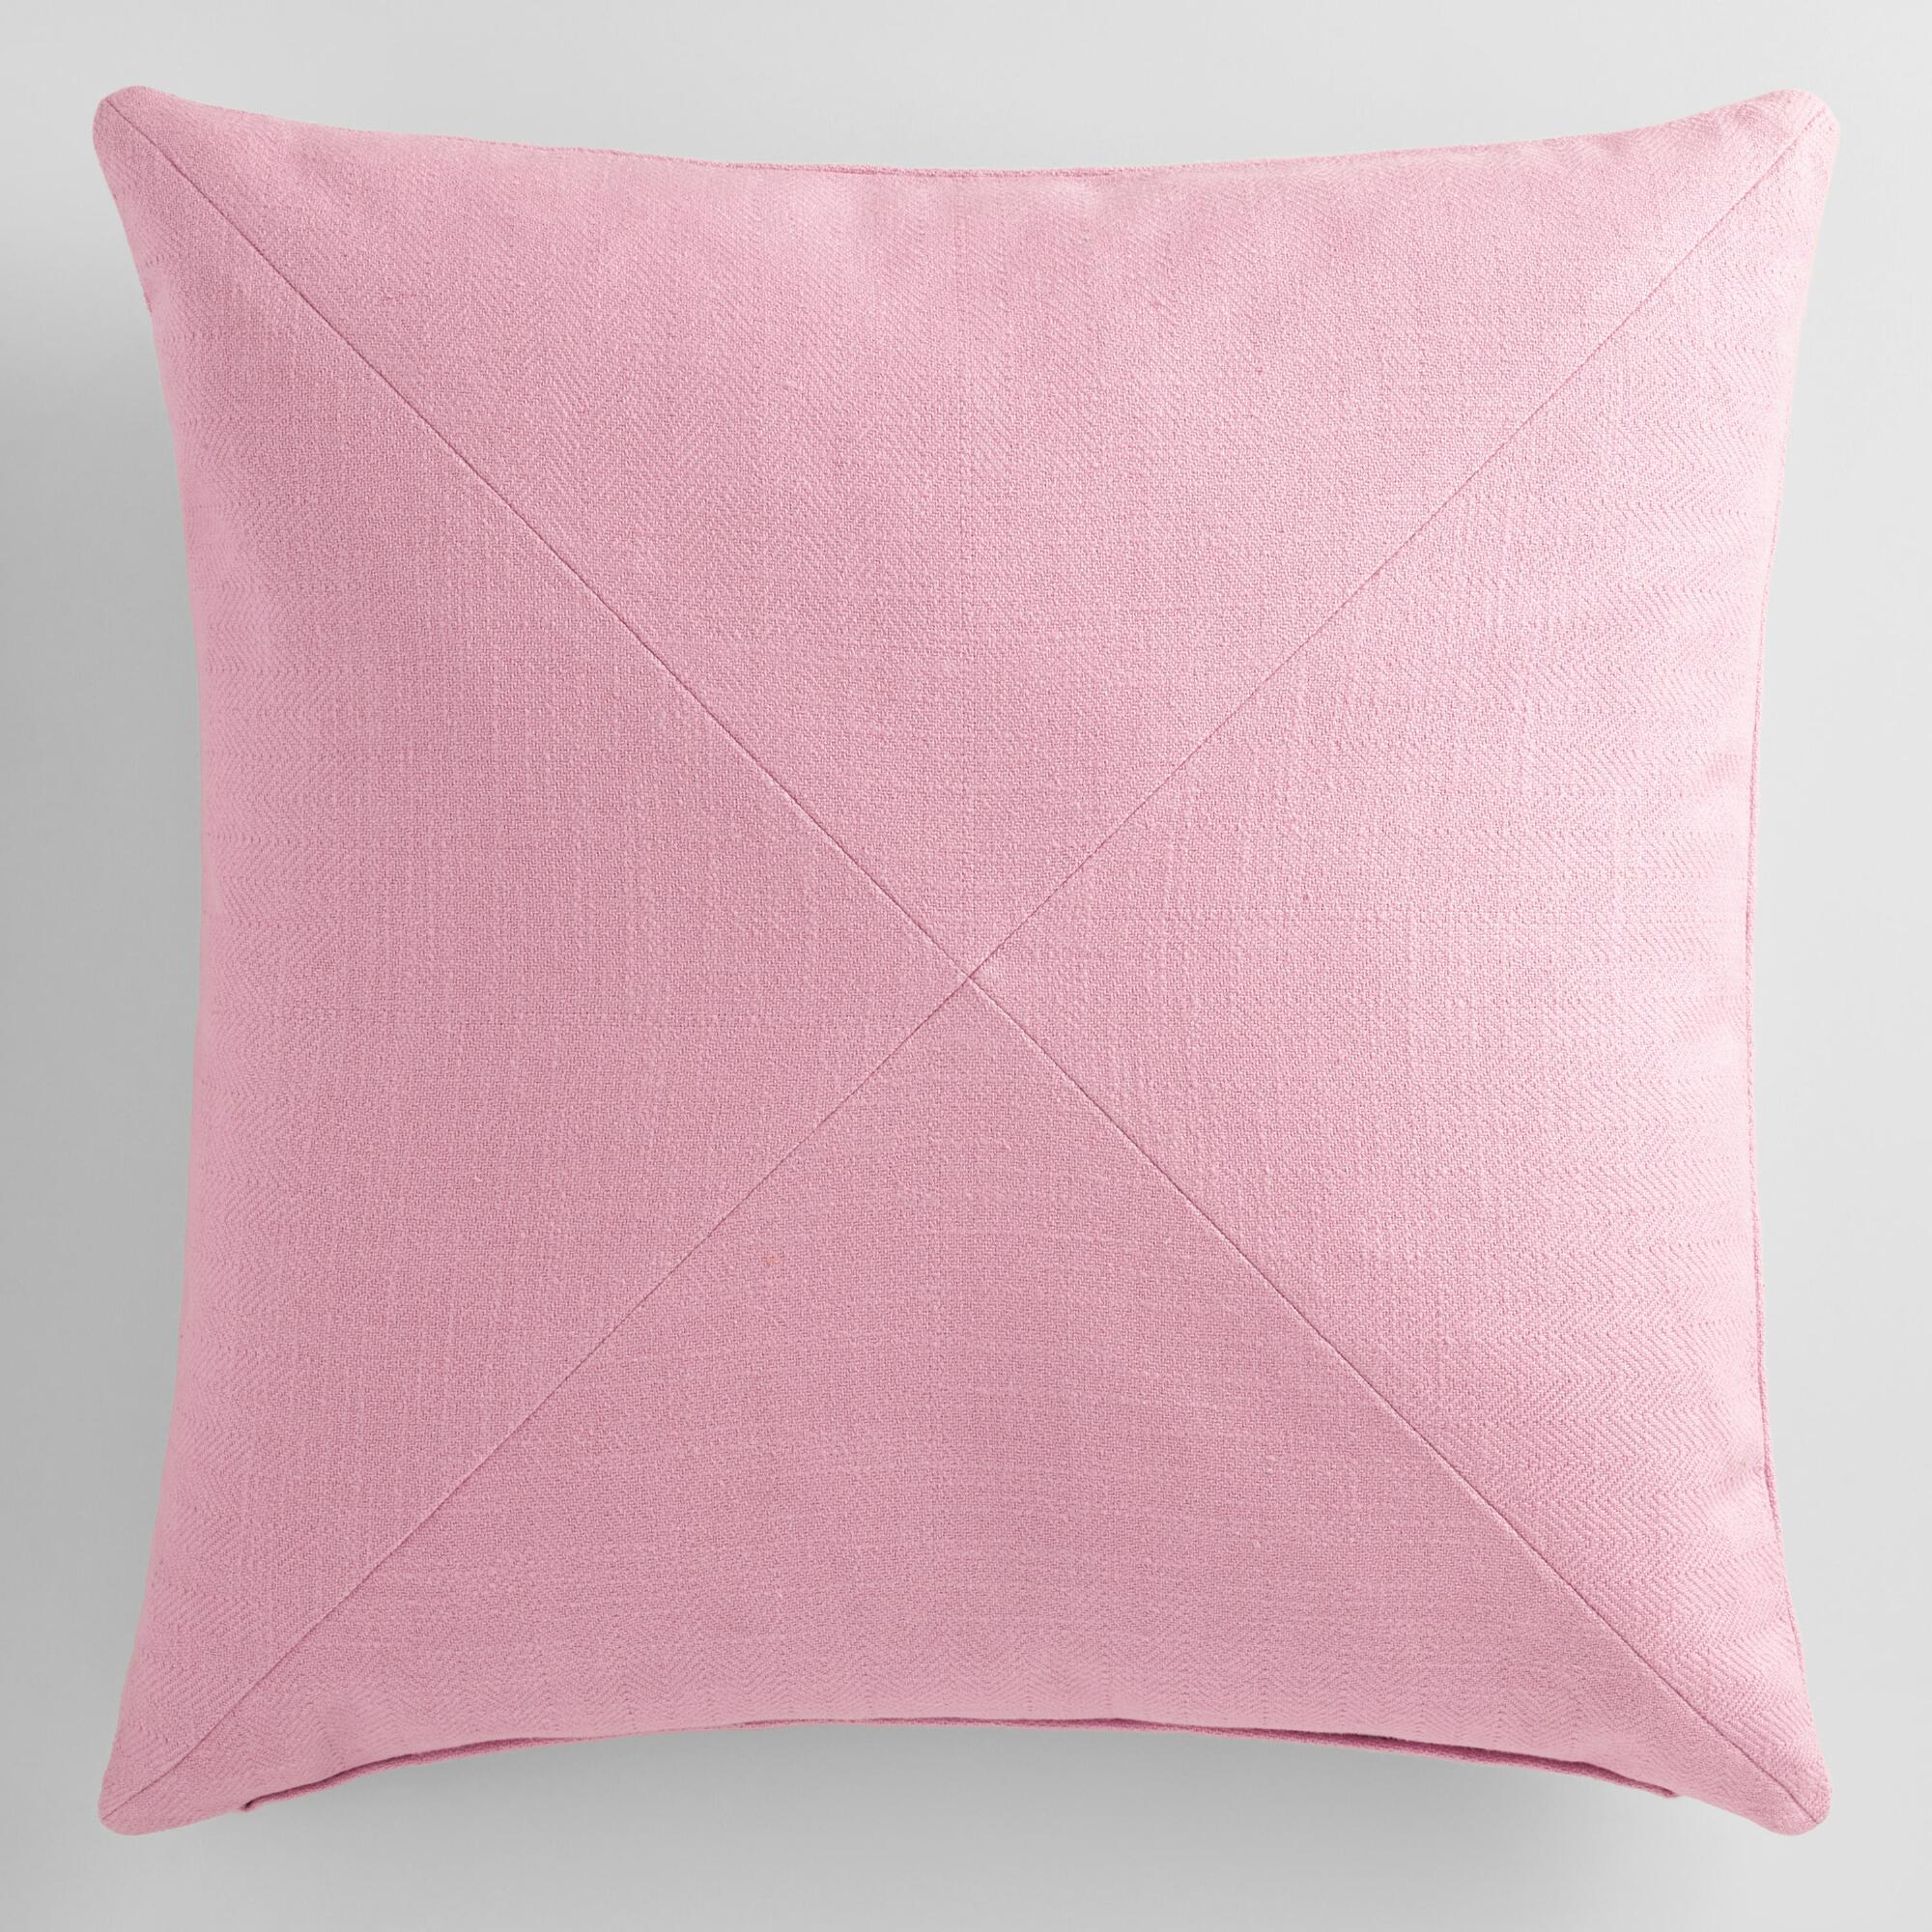 Throw Pillow Lilac : Lilac Mist Herringbone Cotton Throw Pillow World Market